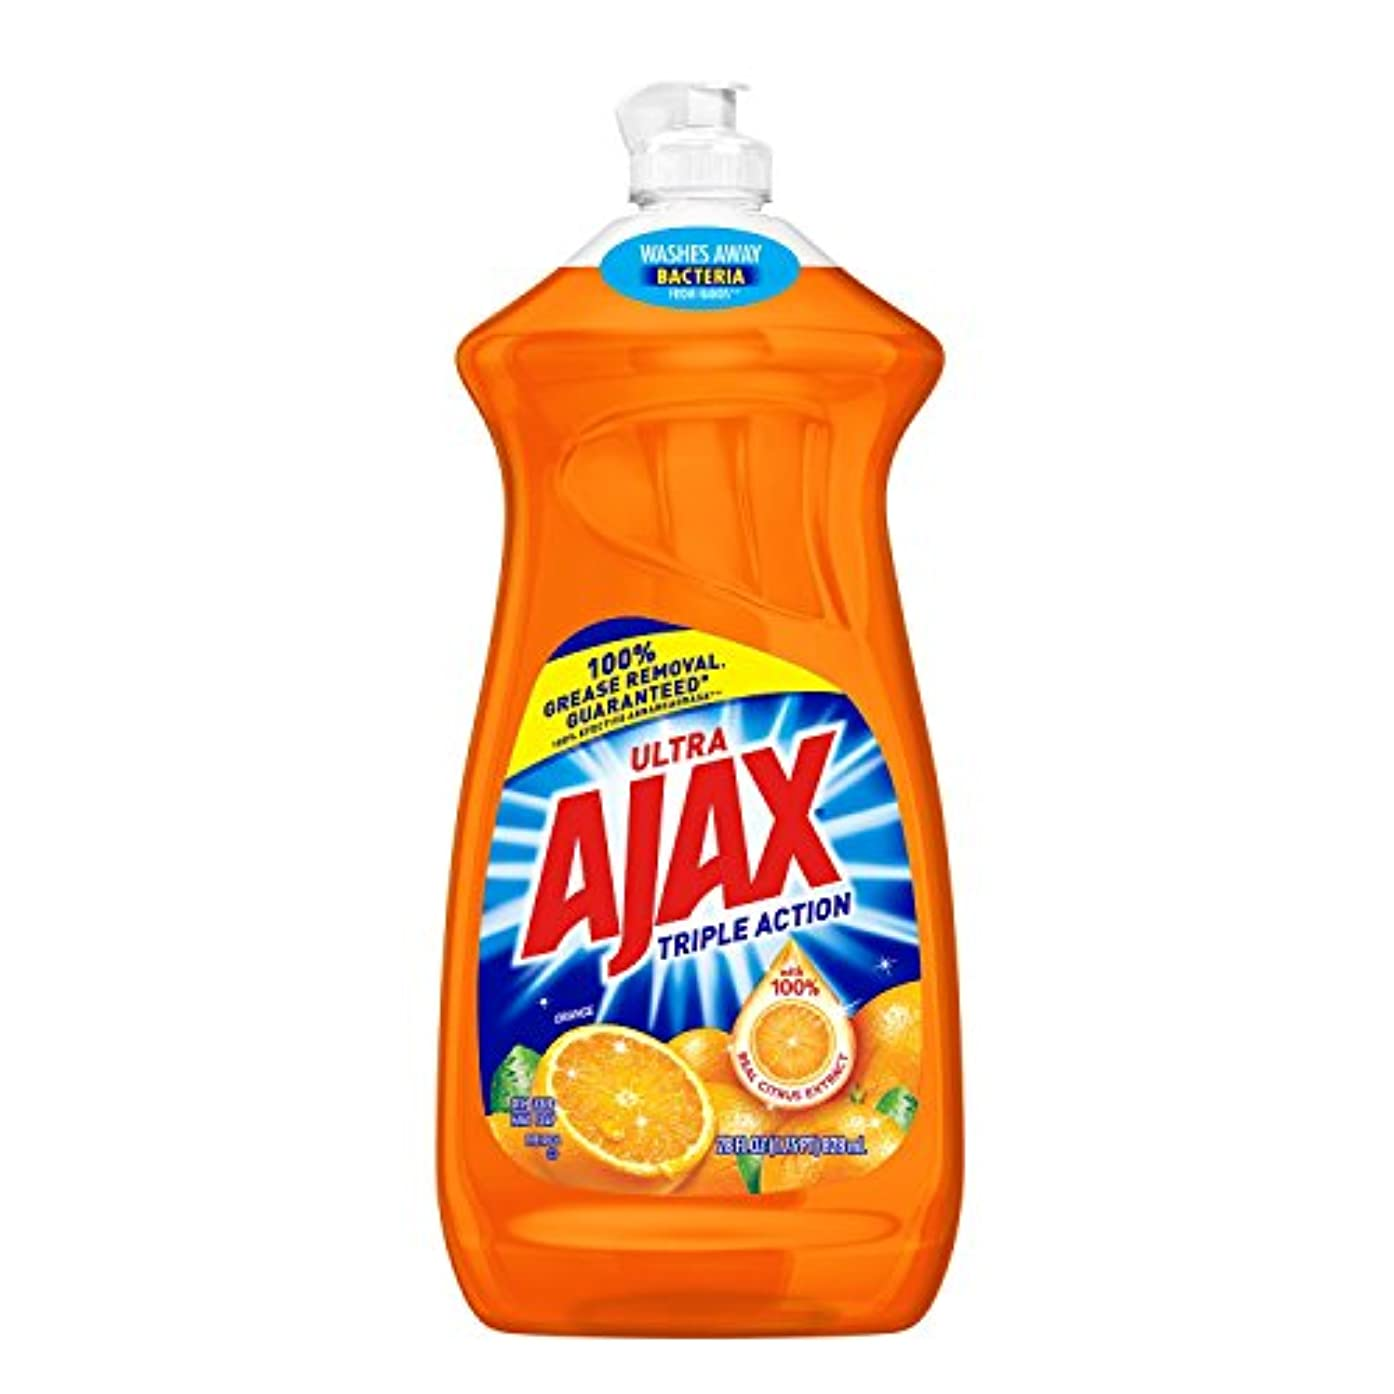 Ajax Triple Action Orange Dish & Hand Soap, 90 Oz, Cuts Grease, Fights Odors, Washes Away Dirt and Bacteria by...